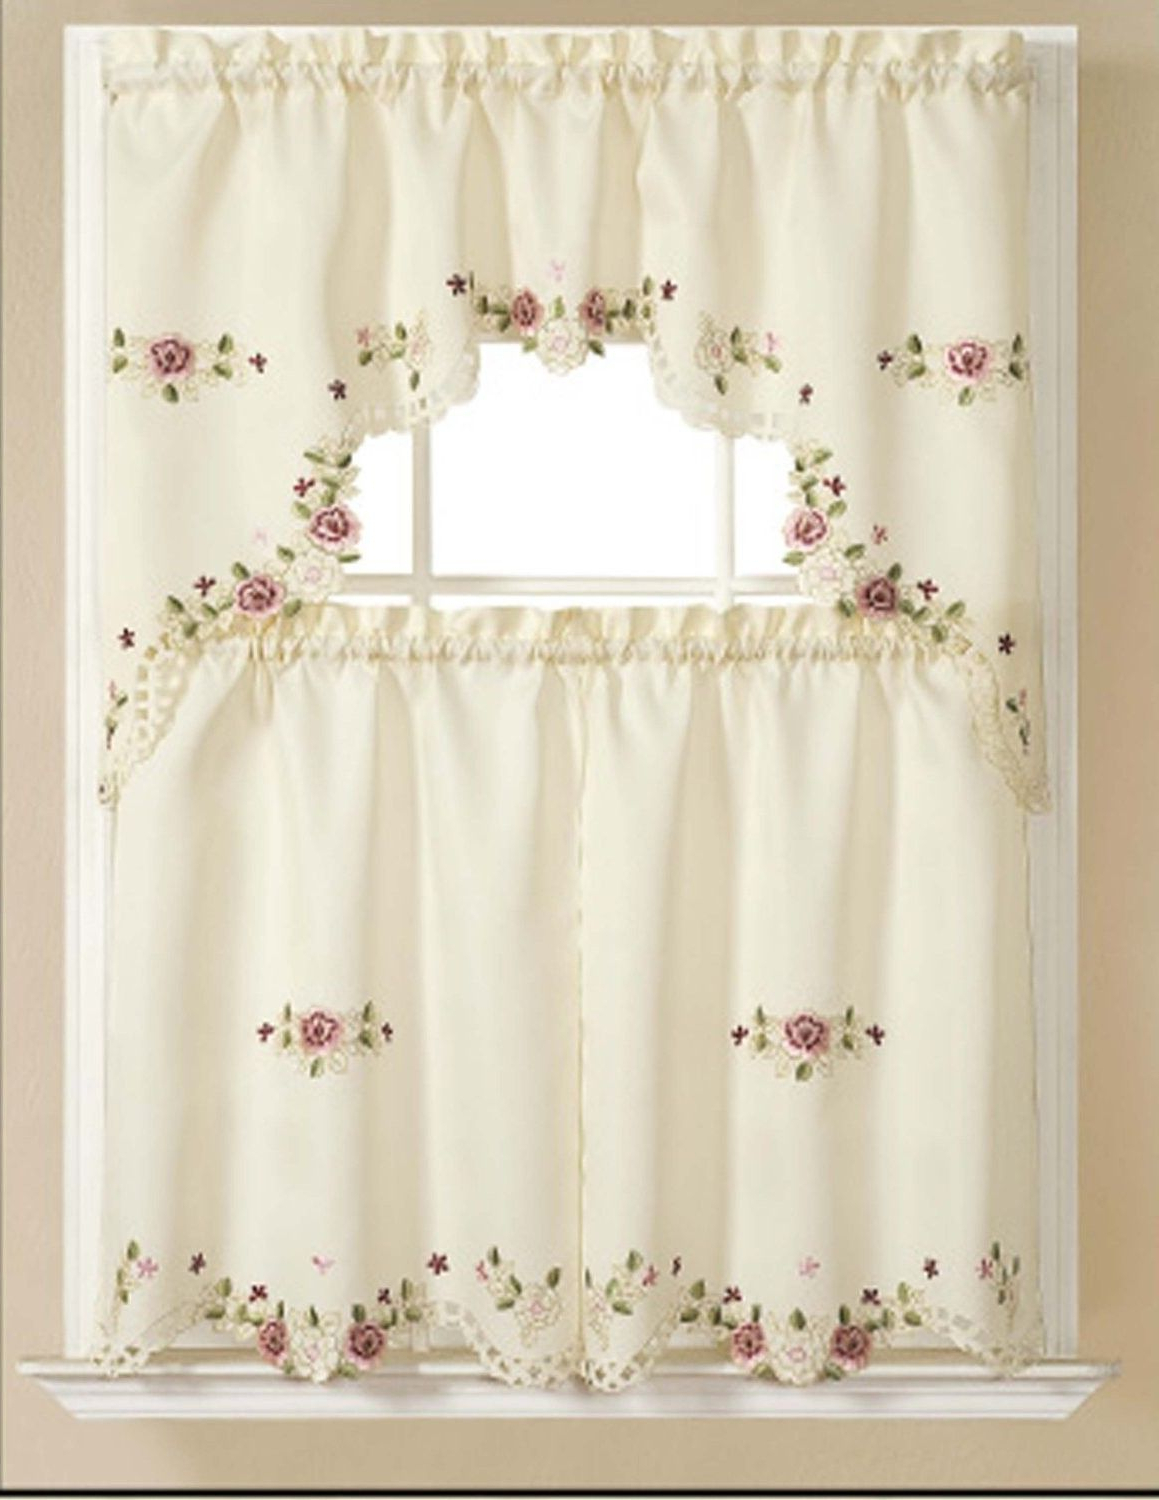 Alisha Elegant Embroidered Kitchen Curtain Swag & Tiers Set Inside Most Up To Date Floral Embroidered Sheer Kitchen Curtain Tiers, Swags And Valances (View 8 of 20)